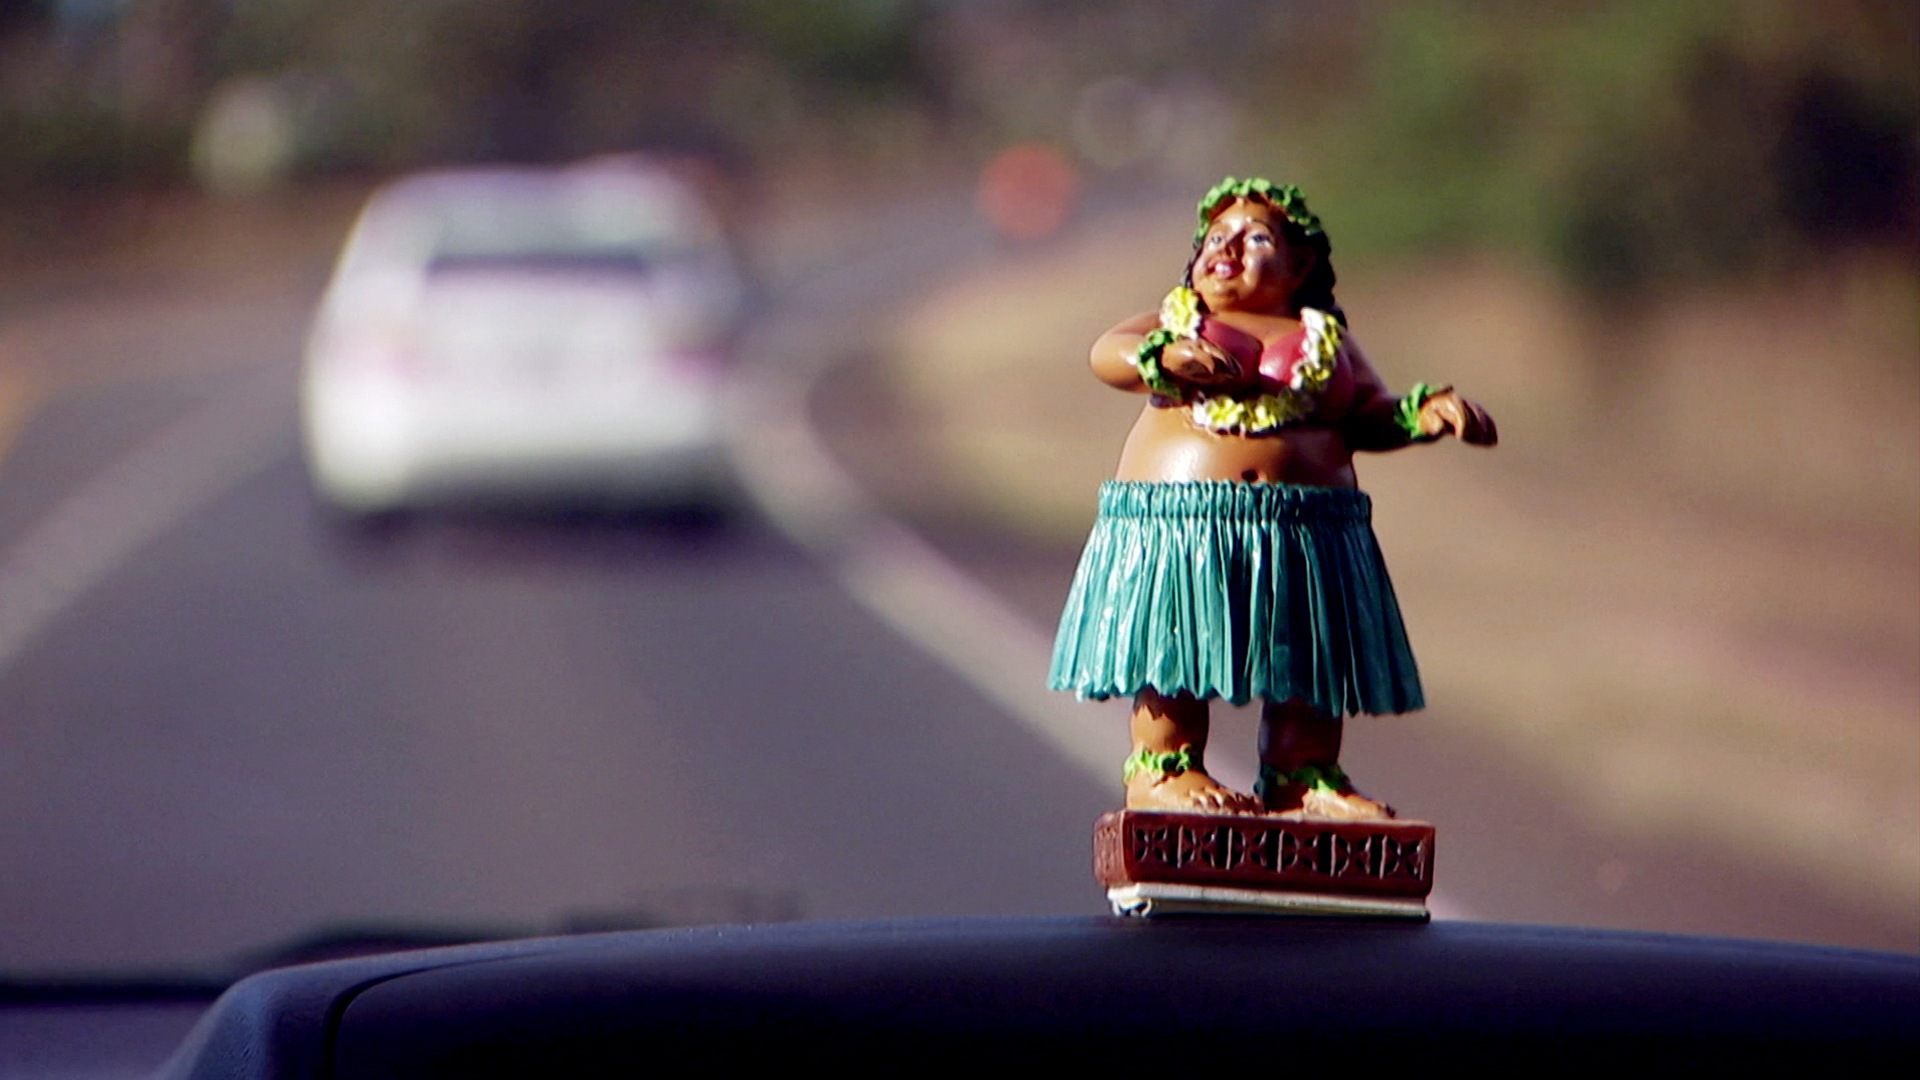 A dashboard hula dancer in the front of a moving car.